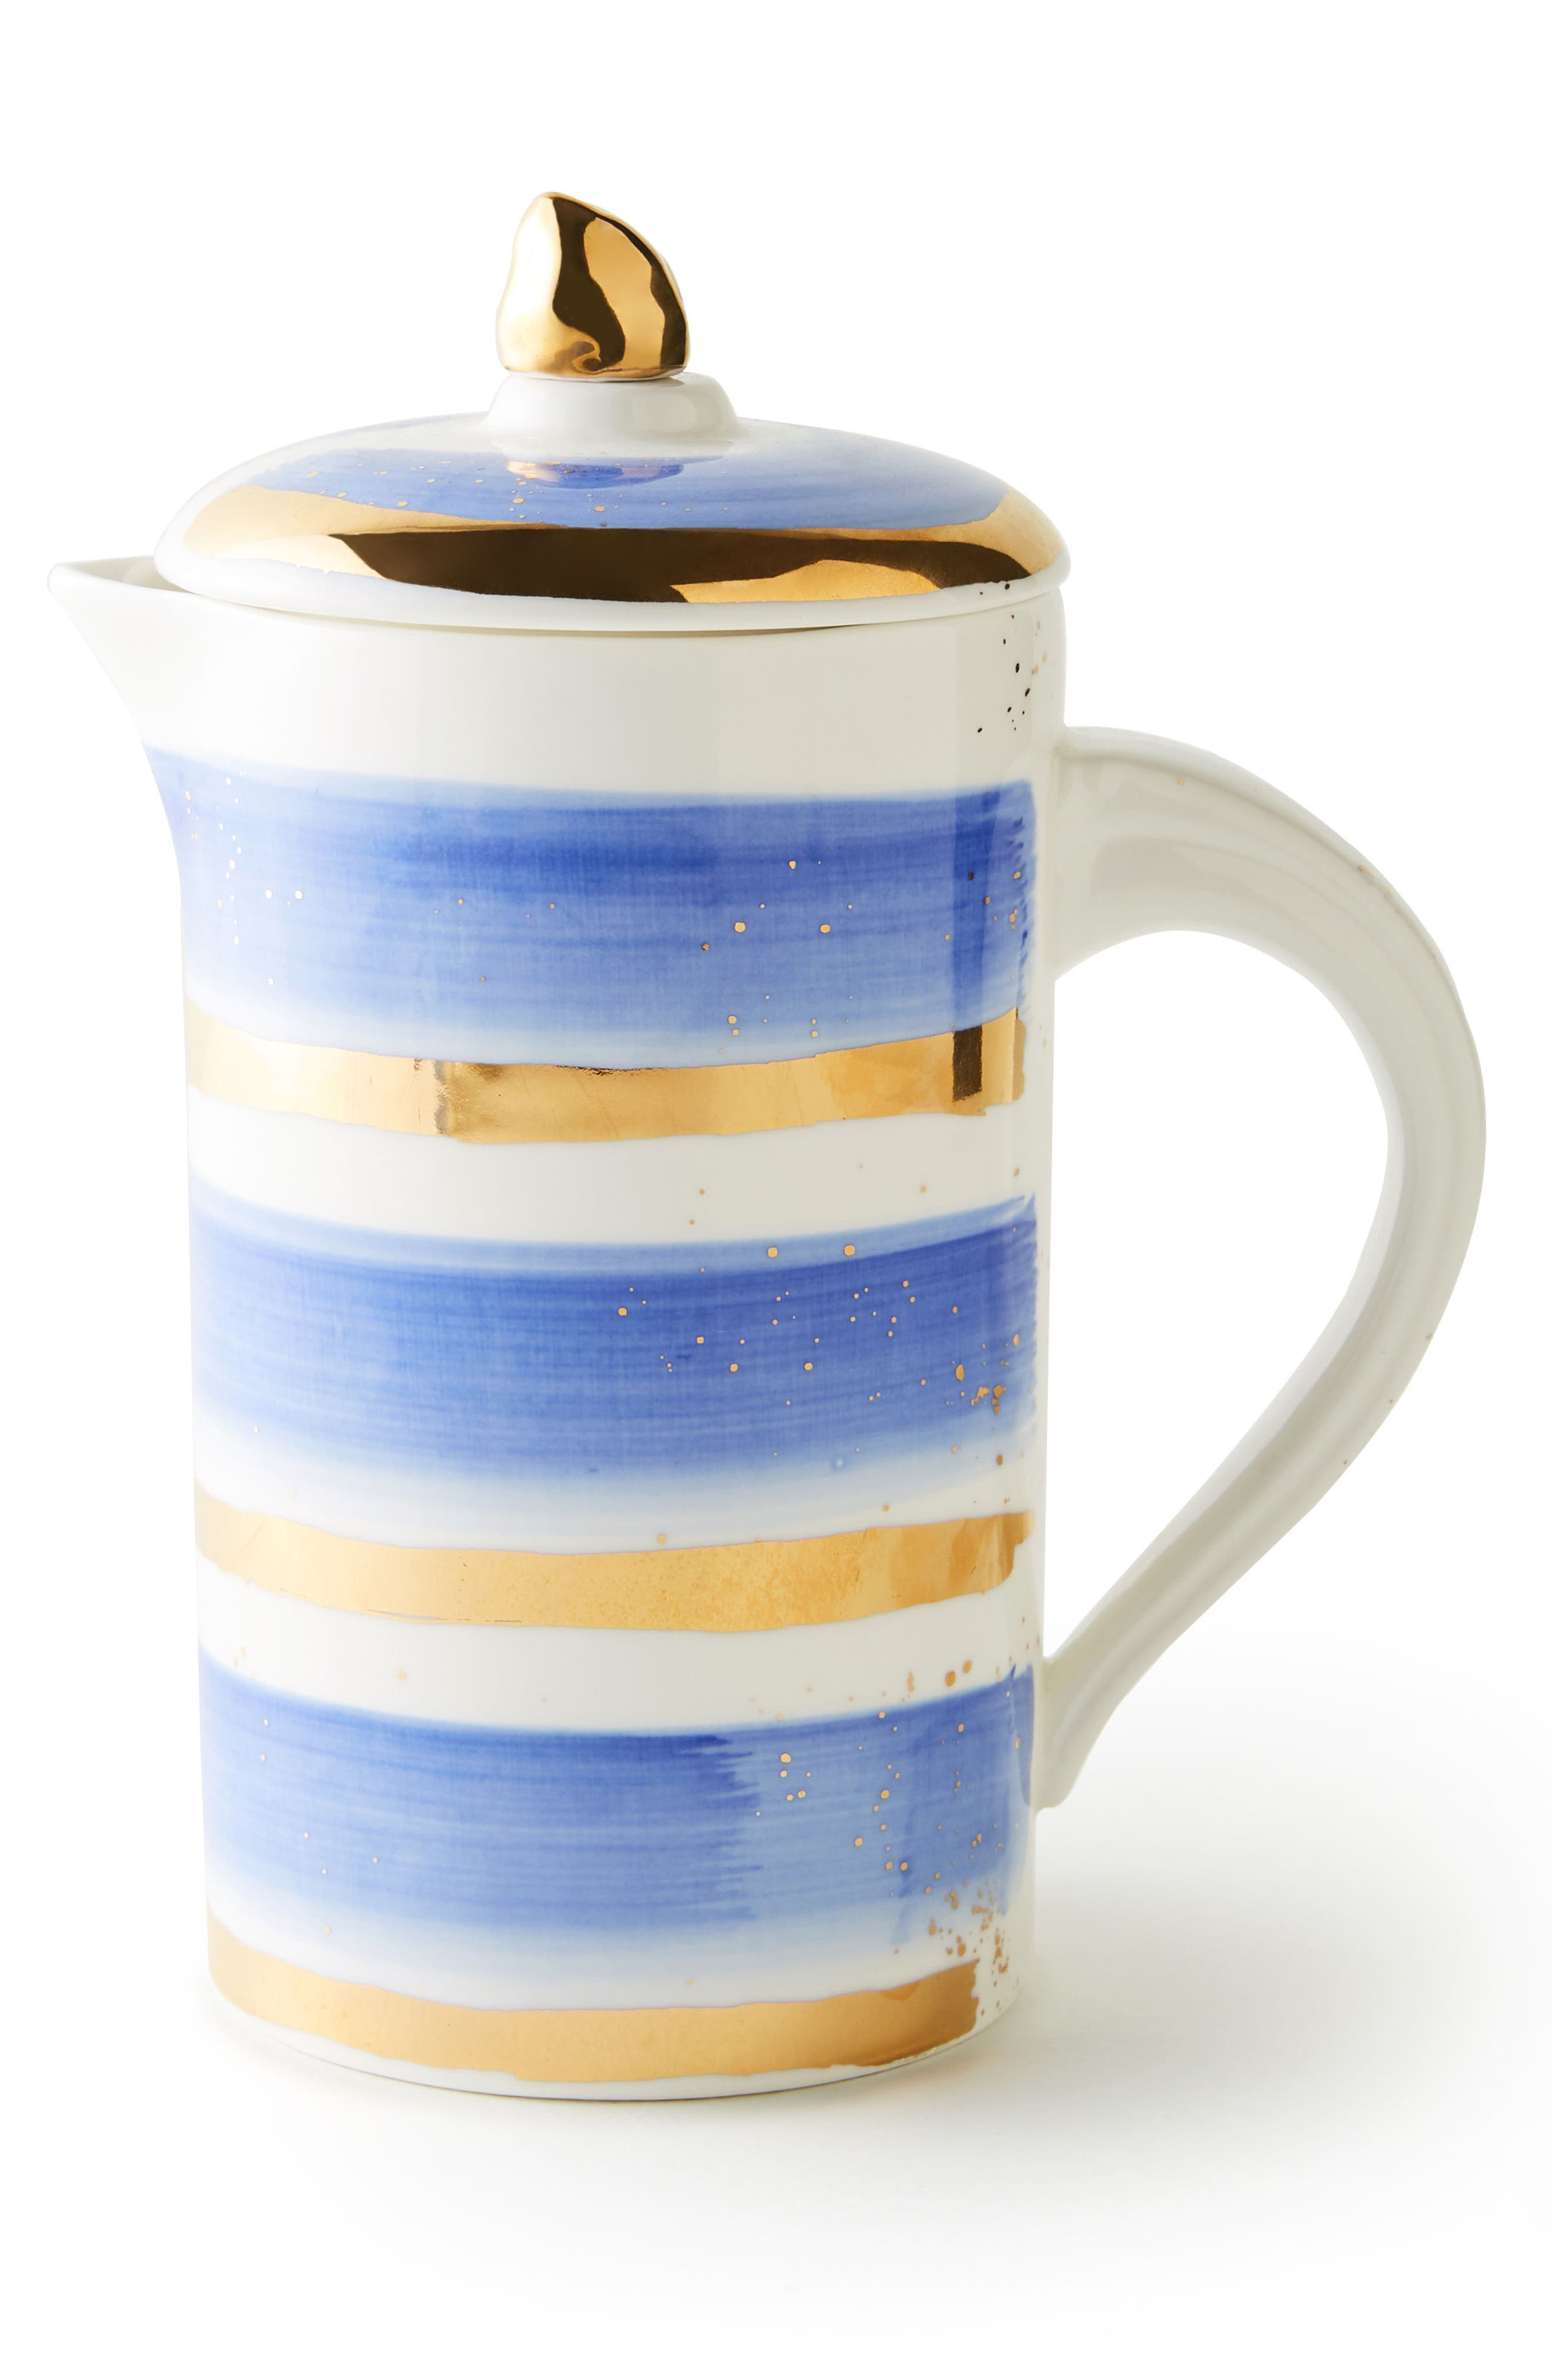 ANTHROPOLOGIE,                             Mimira Stoneware French Press,                             Alternate thumbnail 3, color,                             400